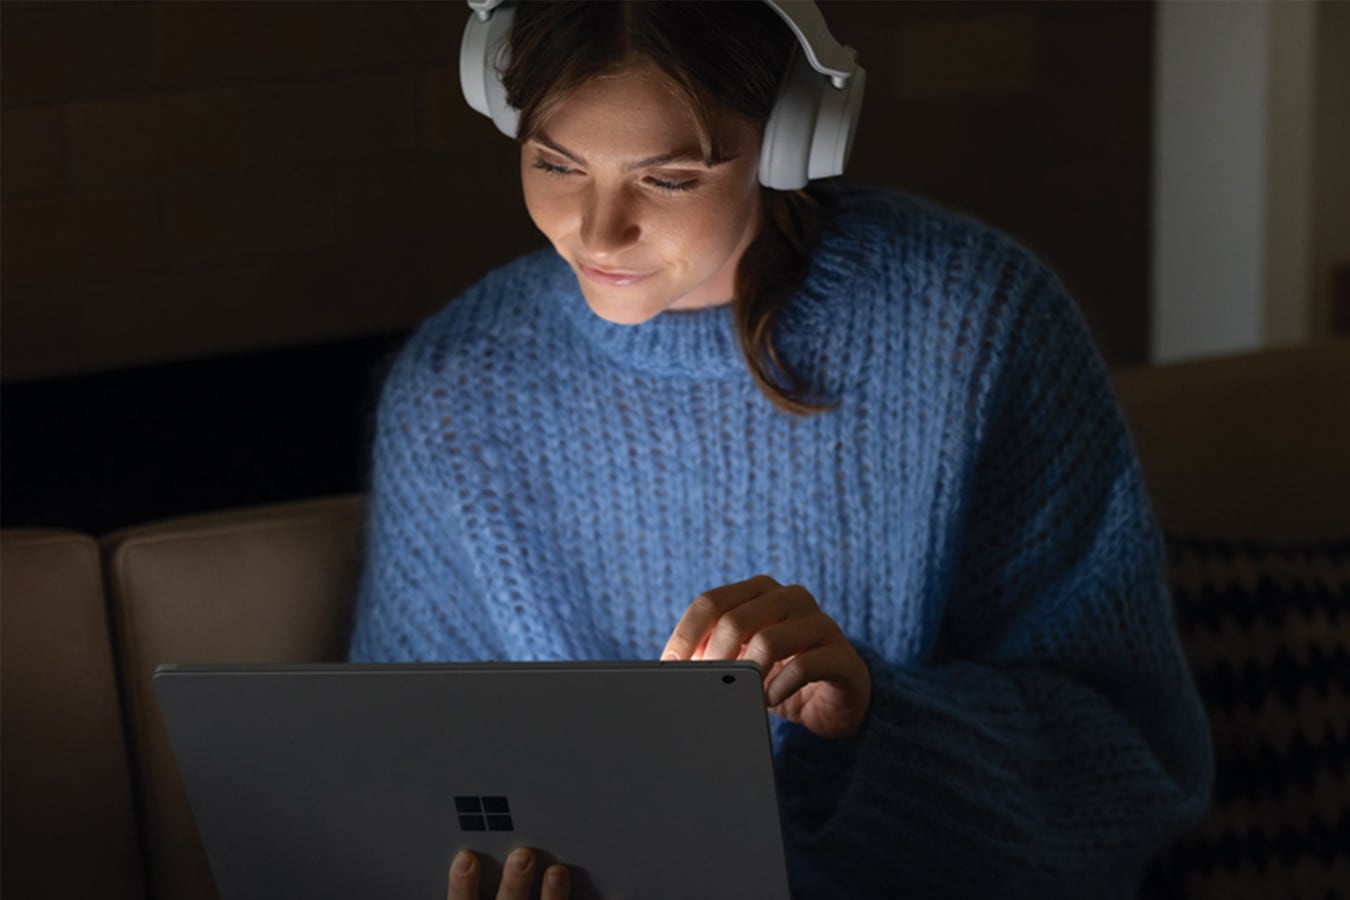 A woman listens to a film with headphones